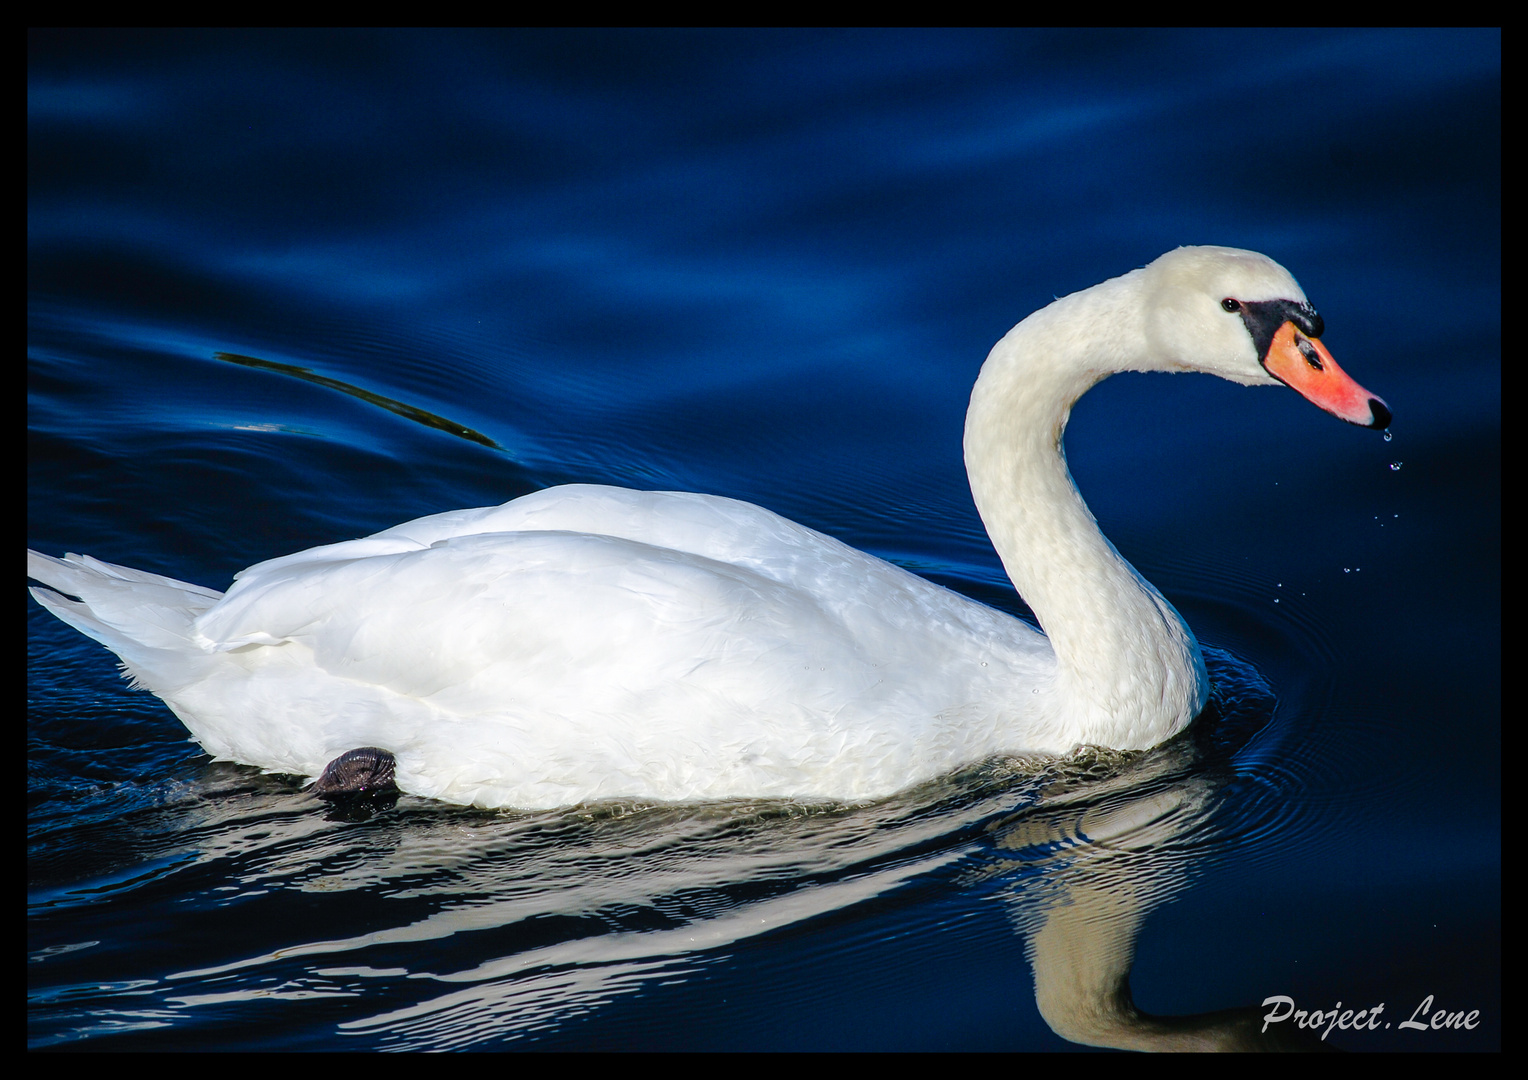 The graceful swan